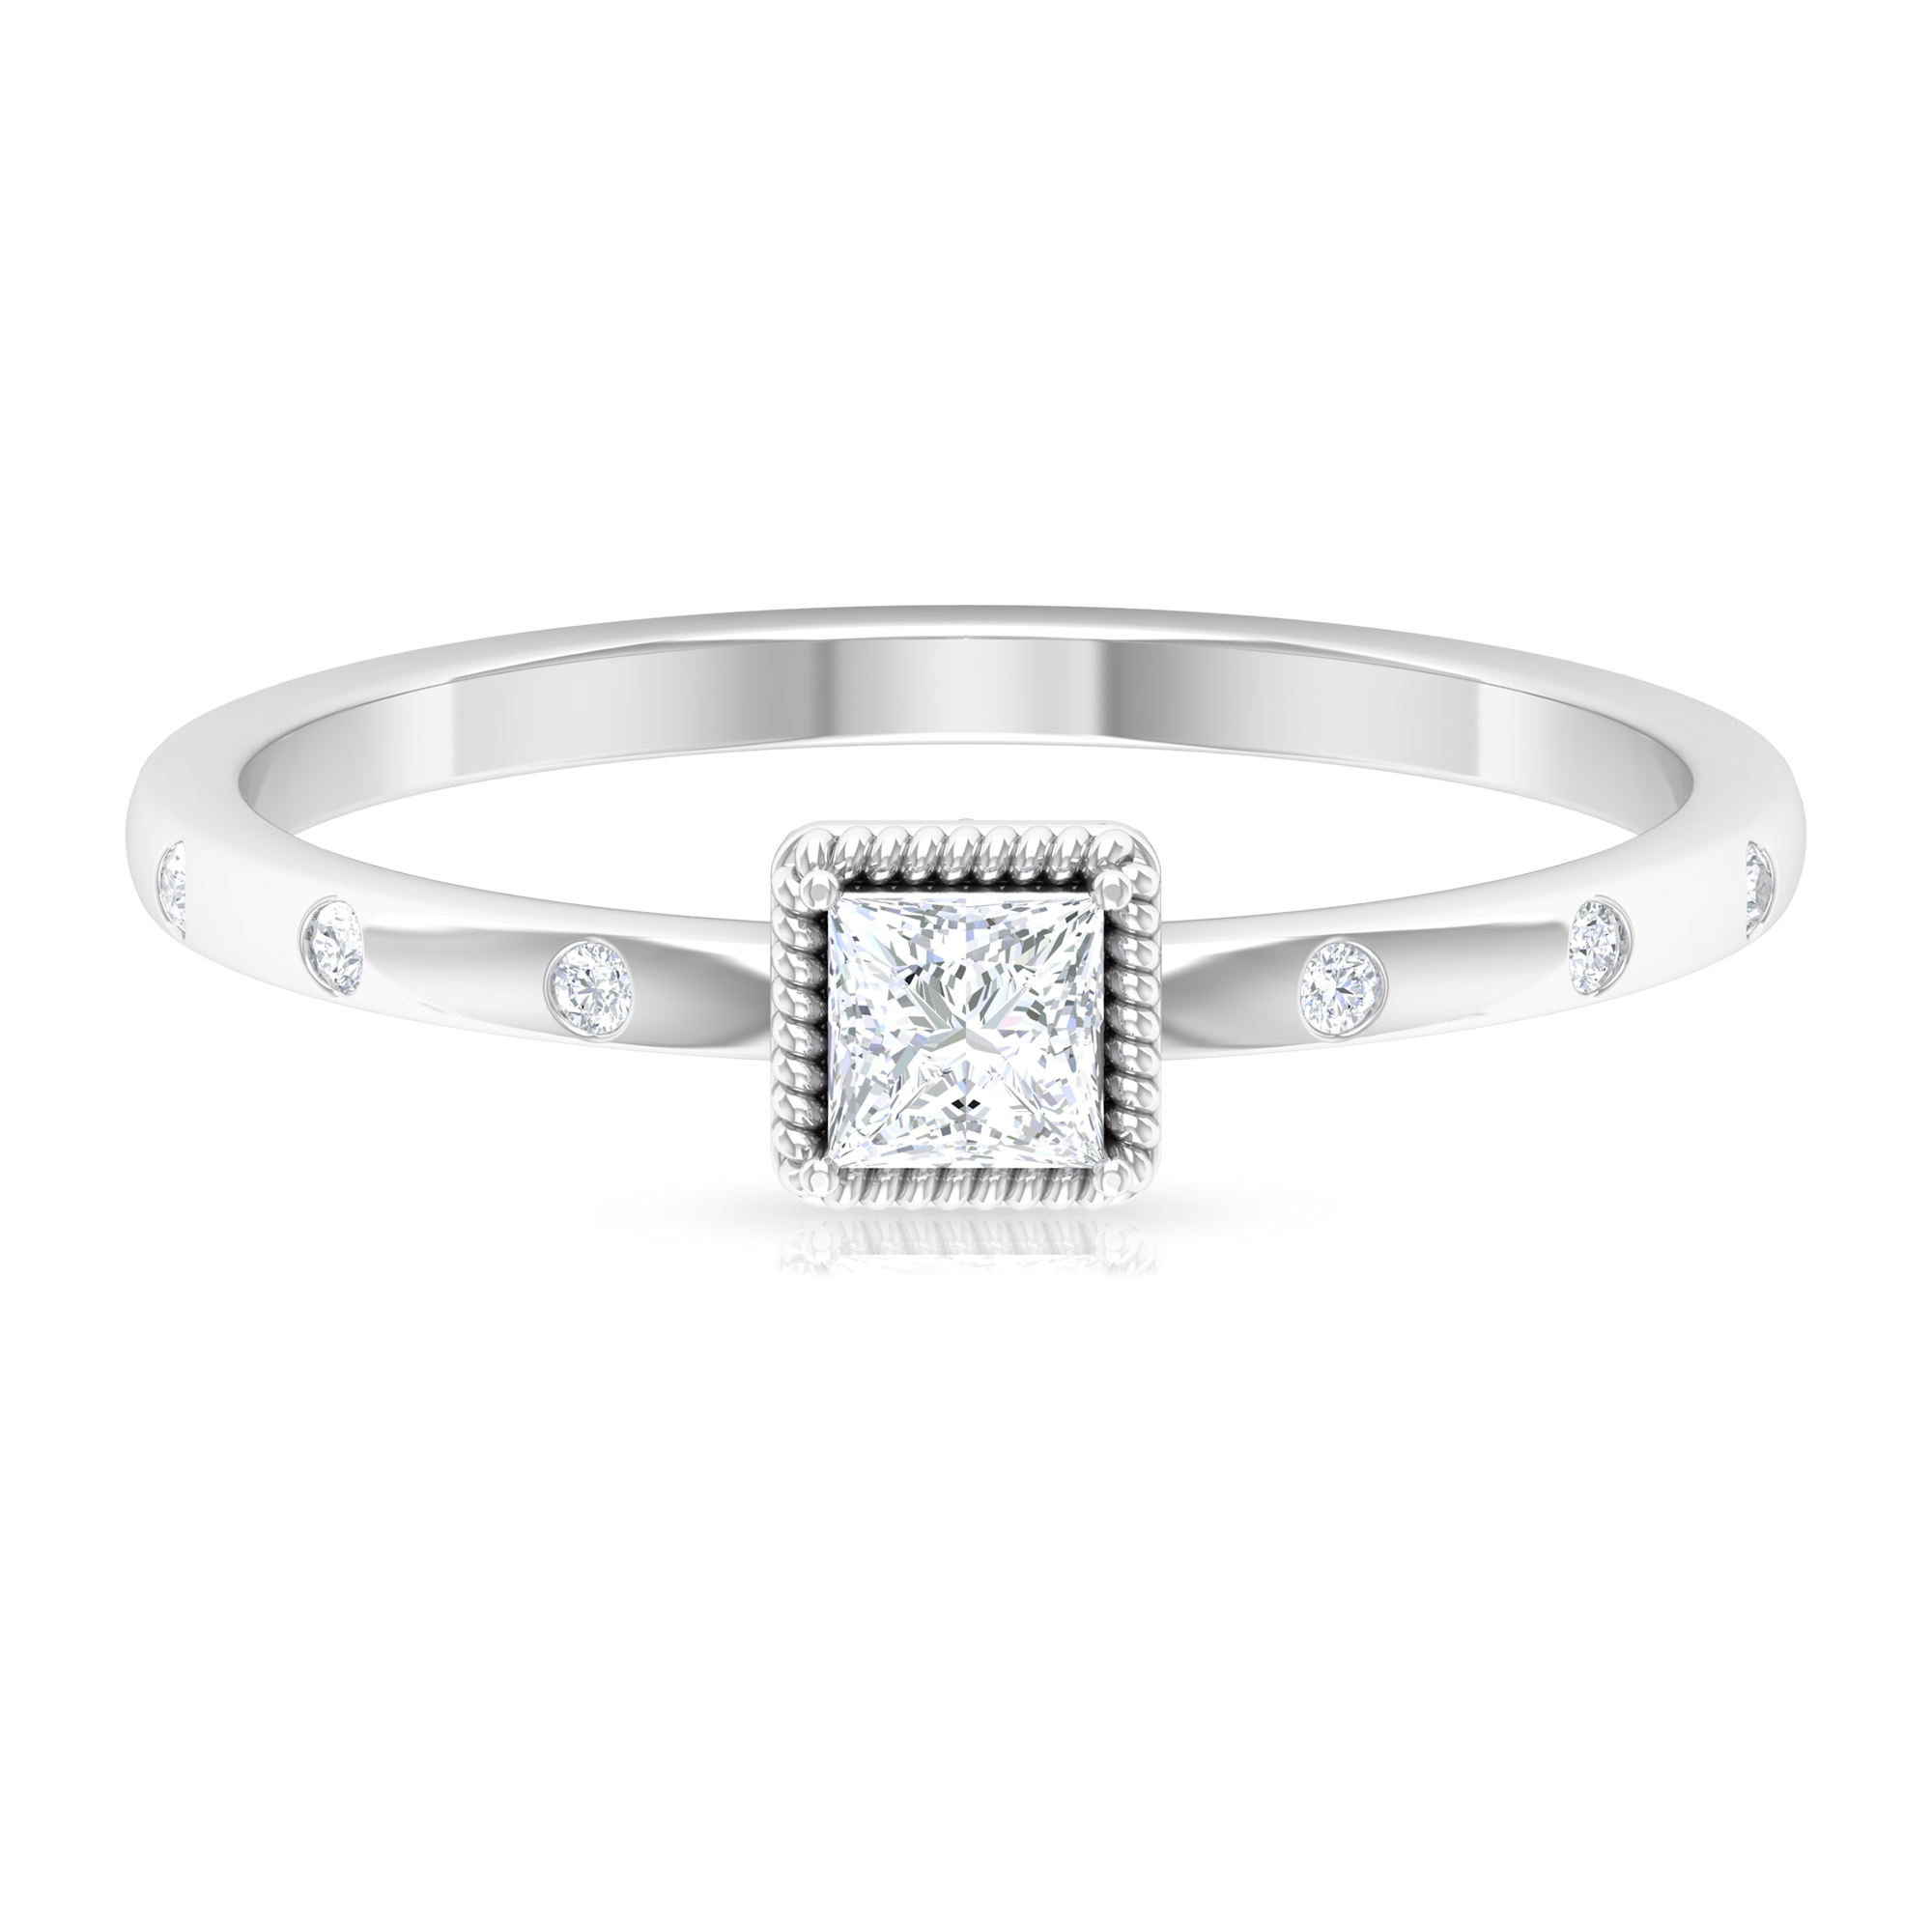 1/4 CT Rope Frame Princess Cut Diamond Solitaire Ring with Sleek Accent Side Stone